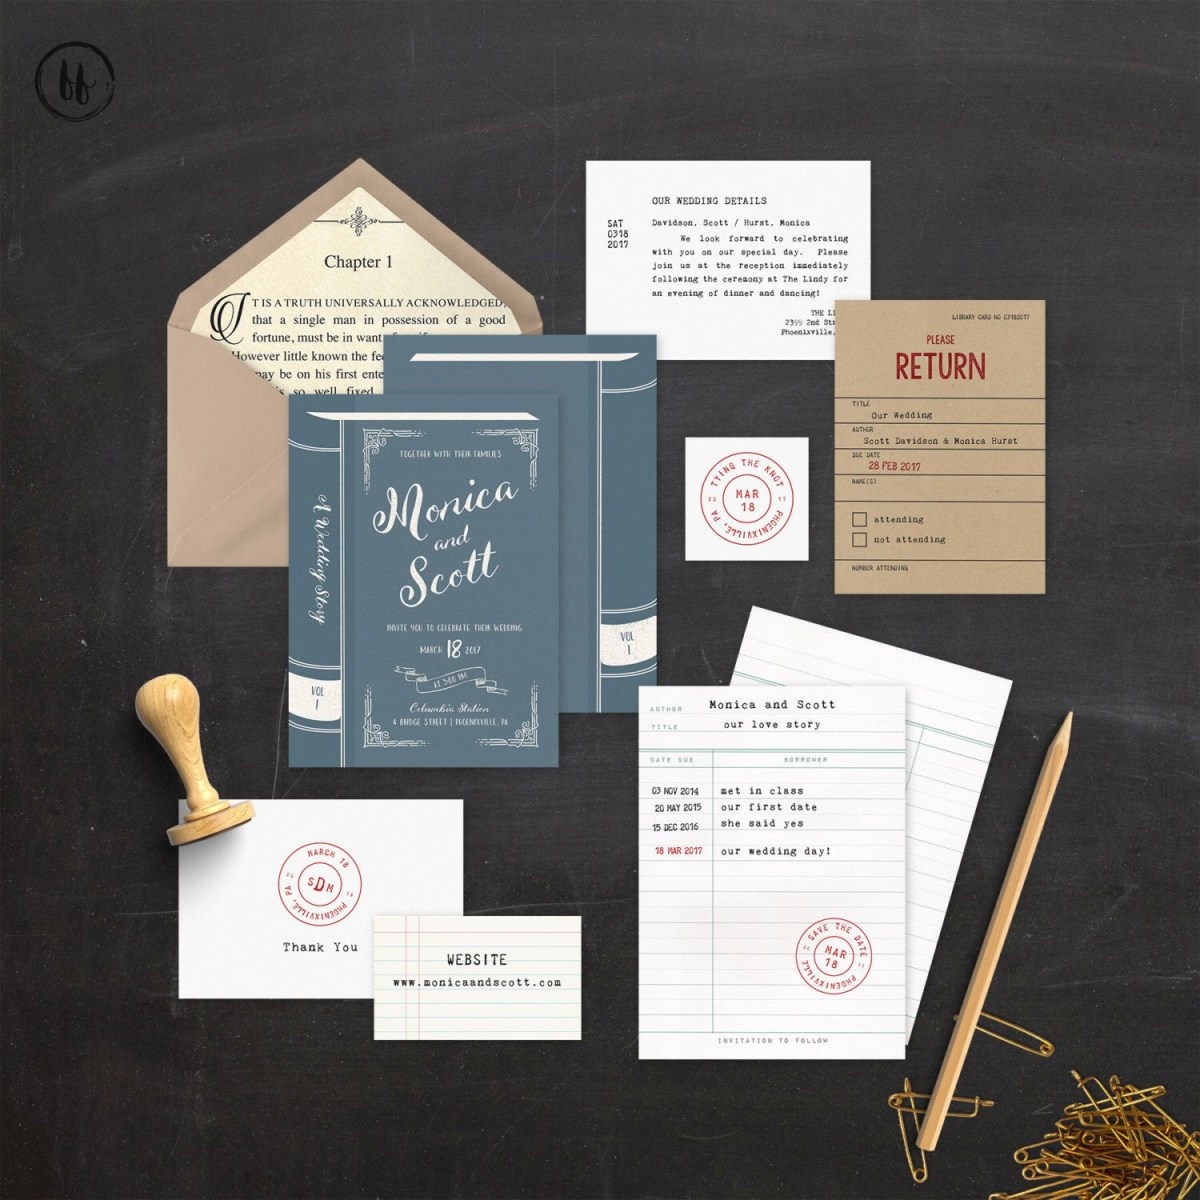 Book Themed Wedding Invitations Pin Stefanie Perez On He Asked And I Said Yes In 2018